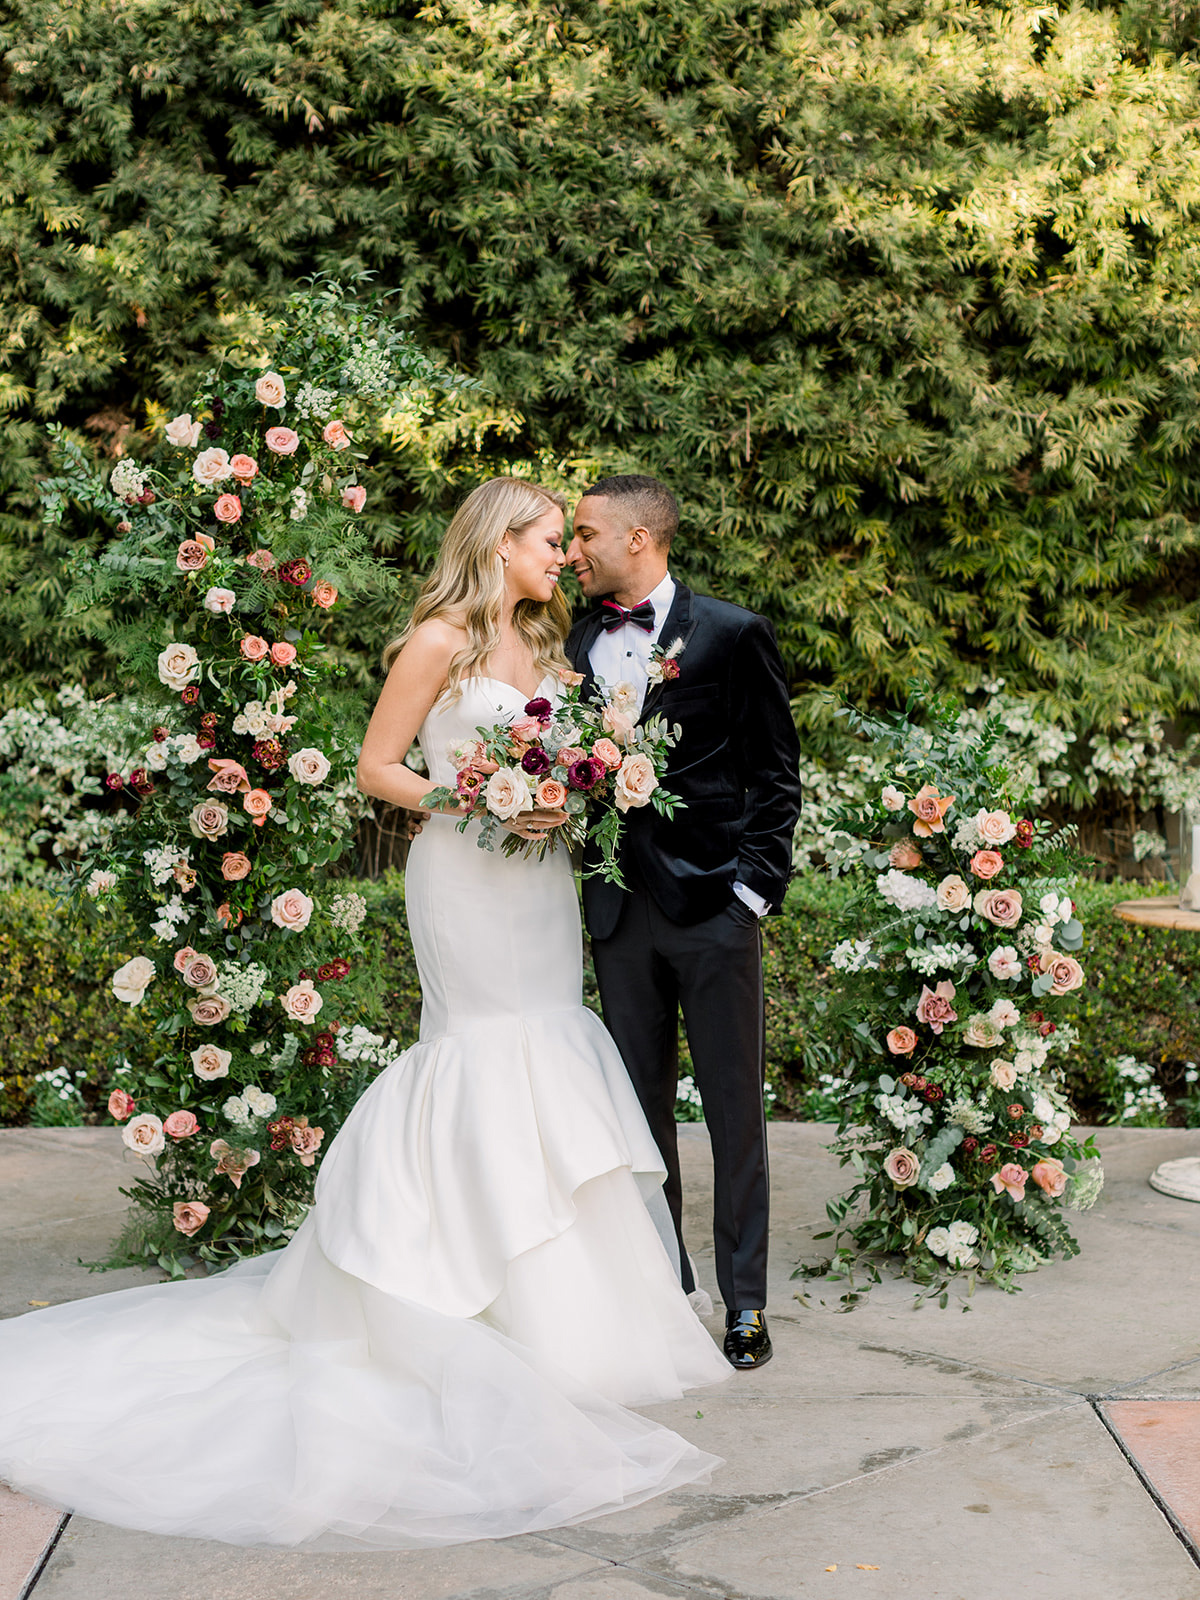 bride in white mermaid wedding dress and groom in black posing for portrait in front of floral arch